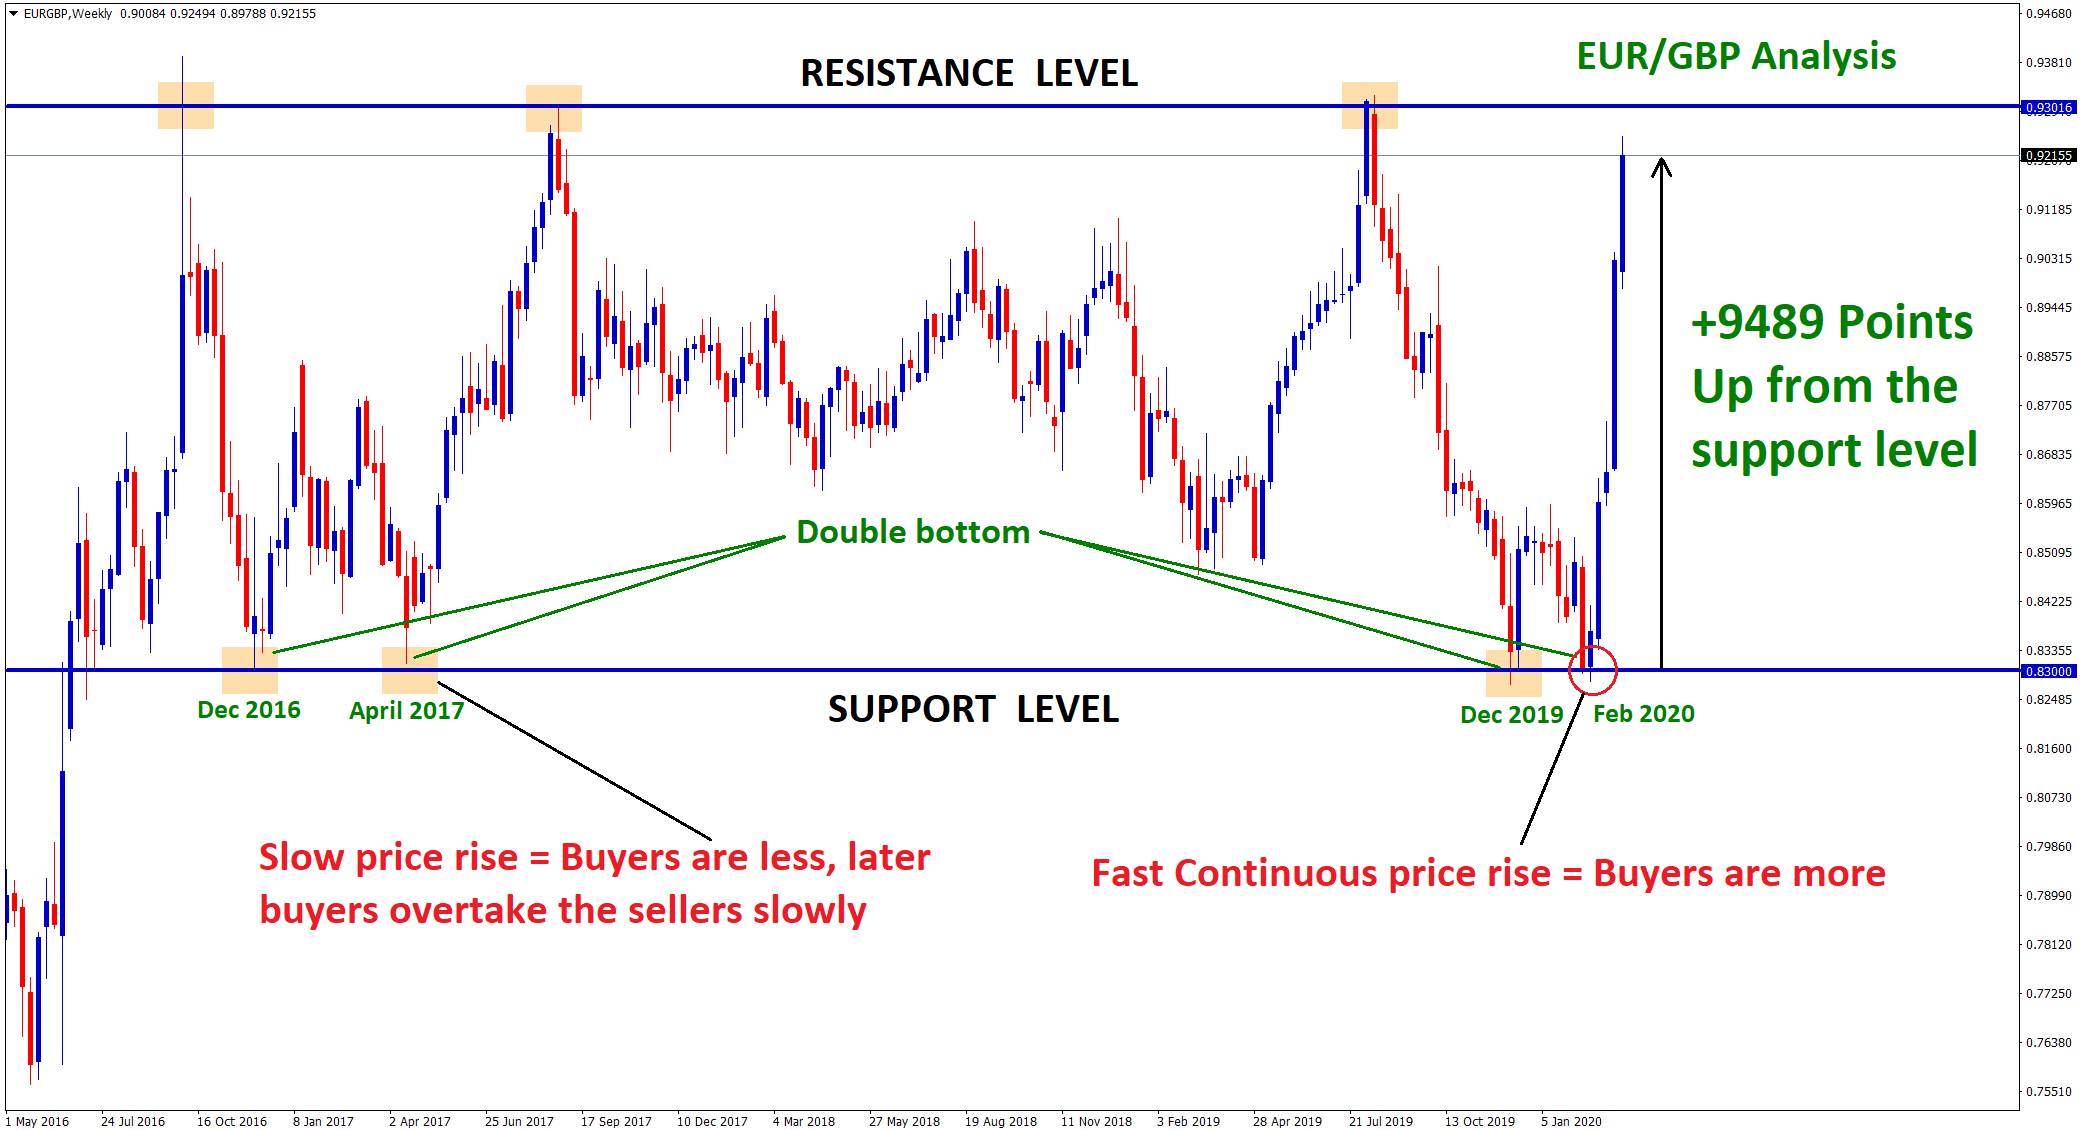 slow and fast sudden price rise from the support level in eurgbp